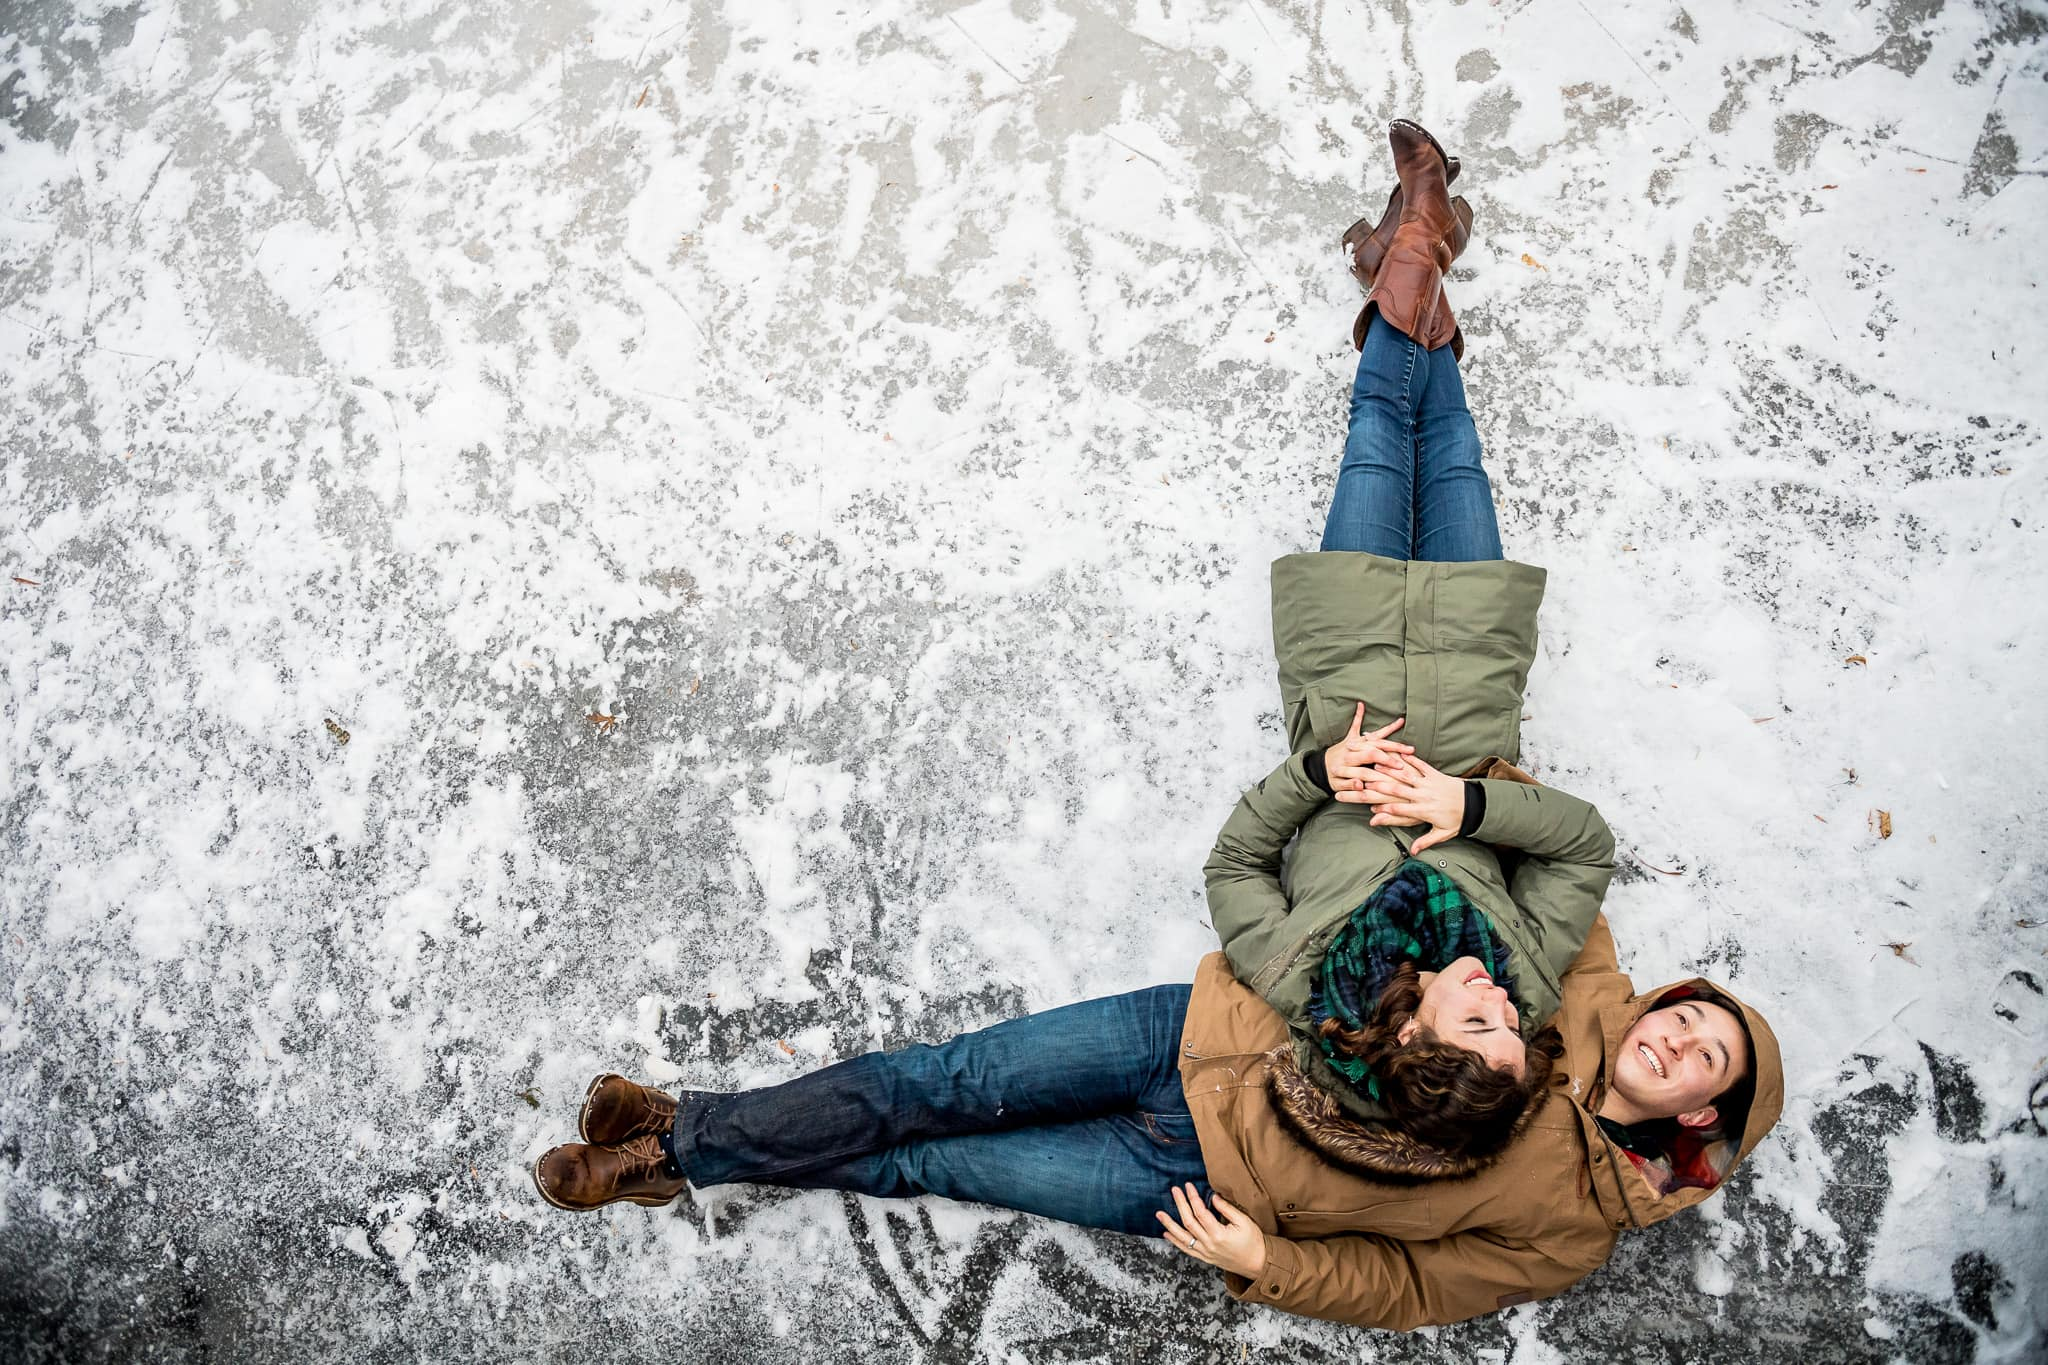 Newly engaged couple laying together on the frozen pond with the woman resting her head on her fiancées stomach with their bodies forming an L shape